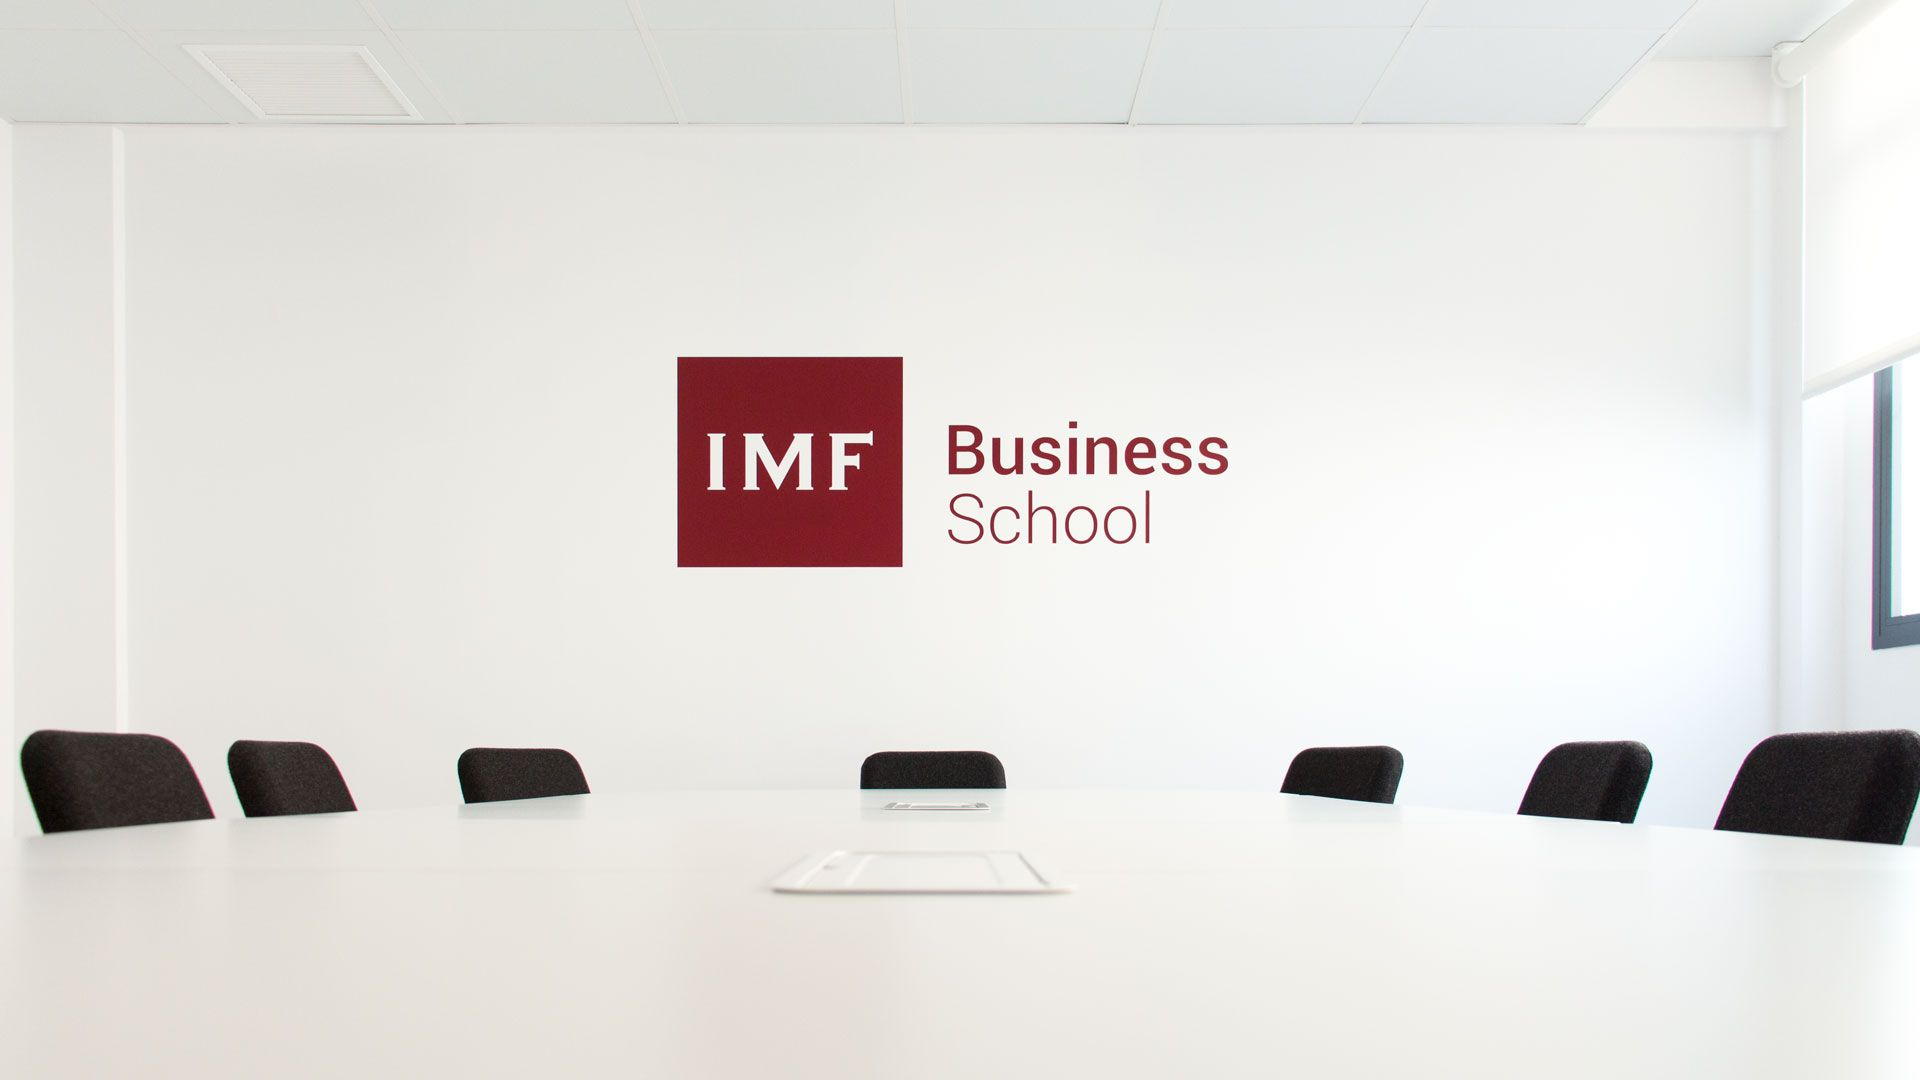 IMF Business School recibe el Sello de Excelencia Europea EFQM 500+